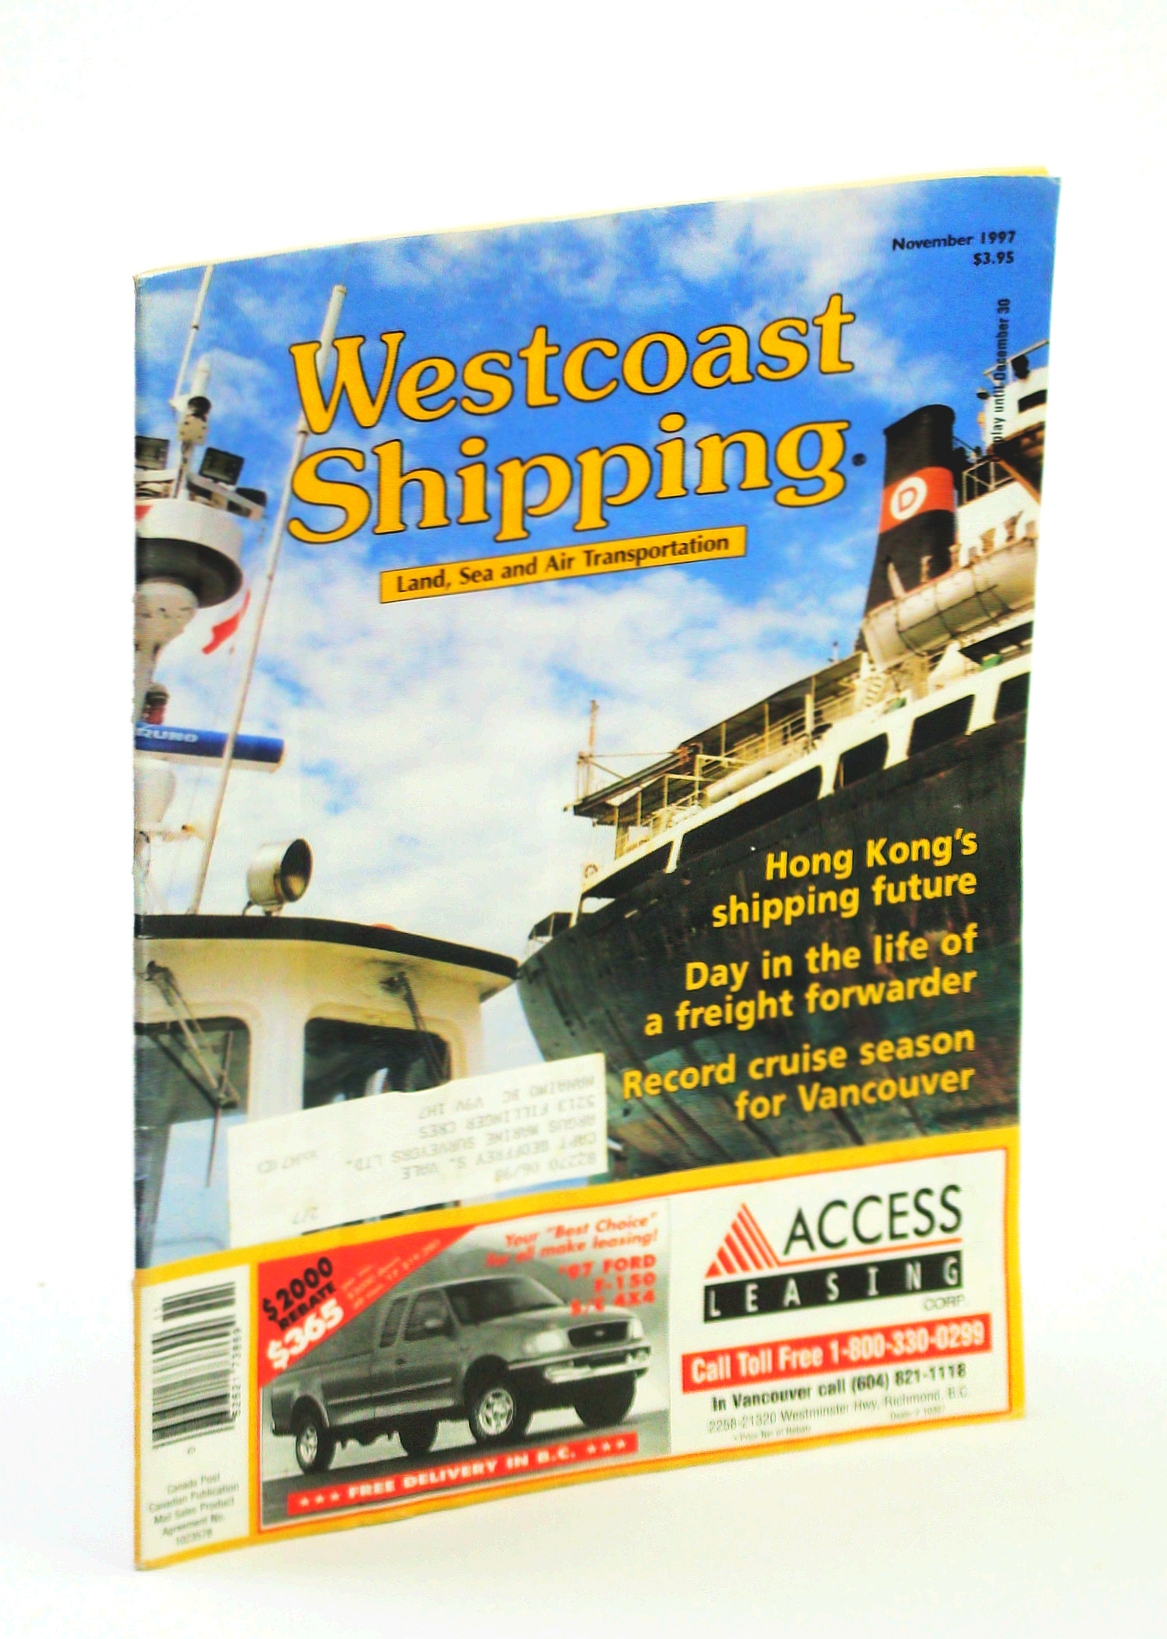 Image for Westcoast Shipping [Magazine] - Your Connection to Land, Sea, Air in the Pacific Rim, November 1997